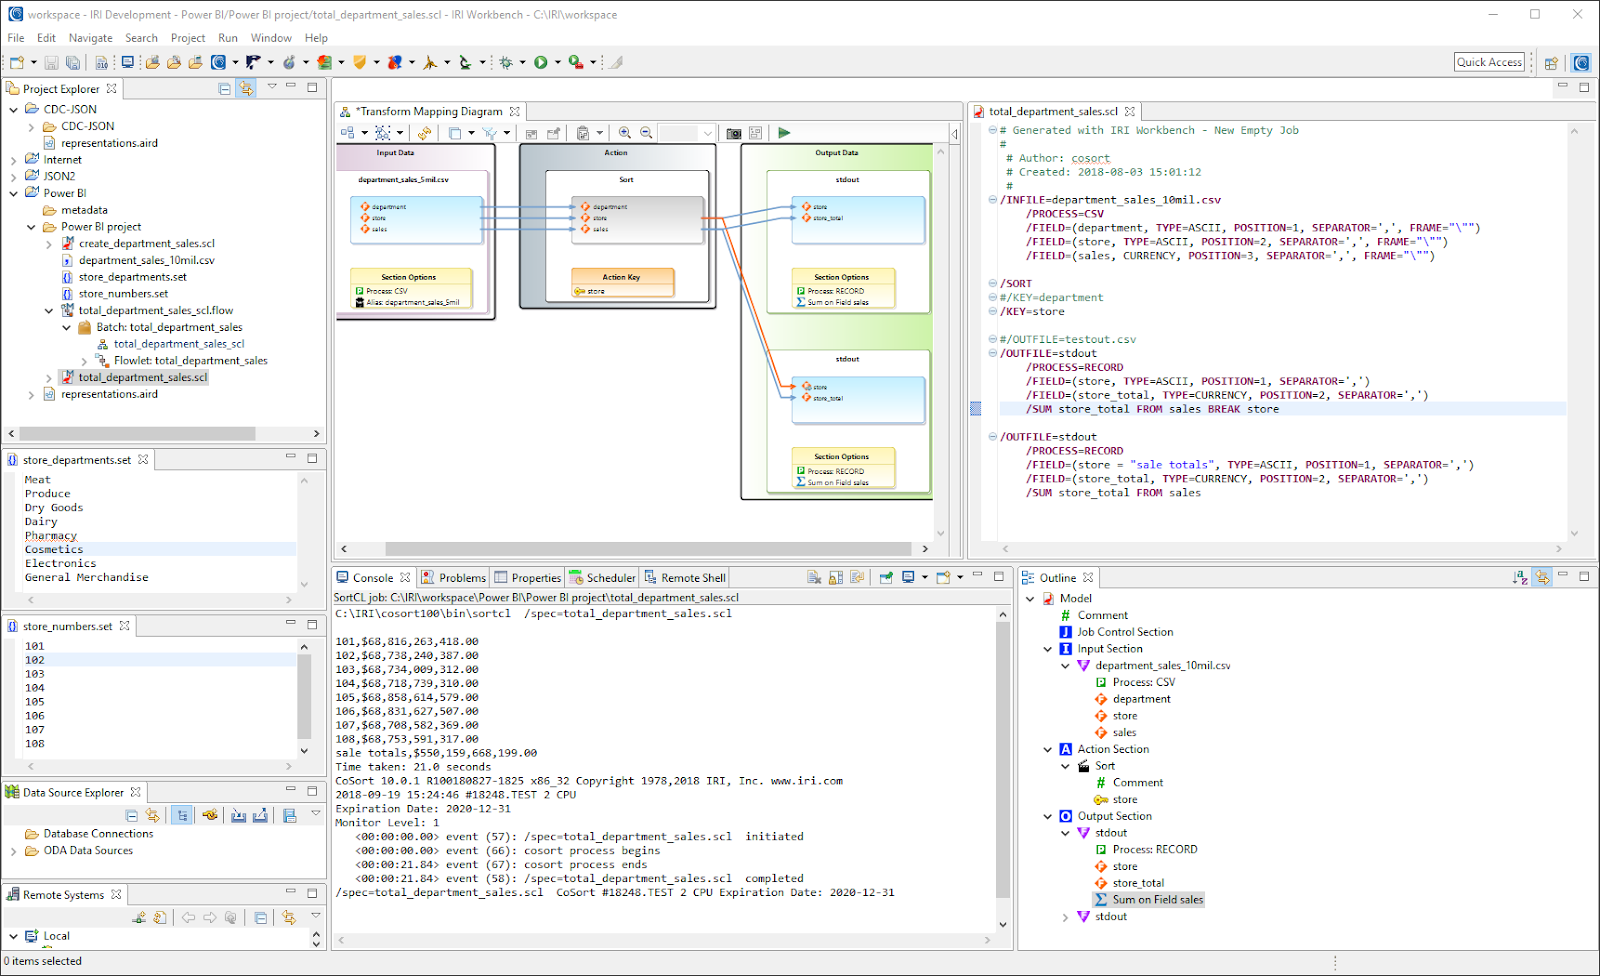 IRI Workbench screenshot